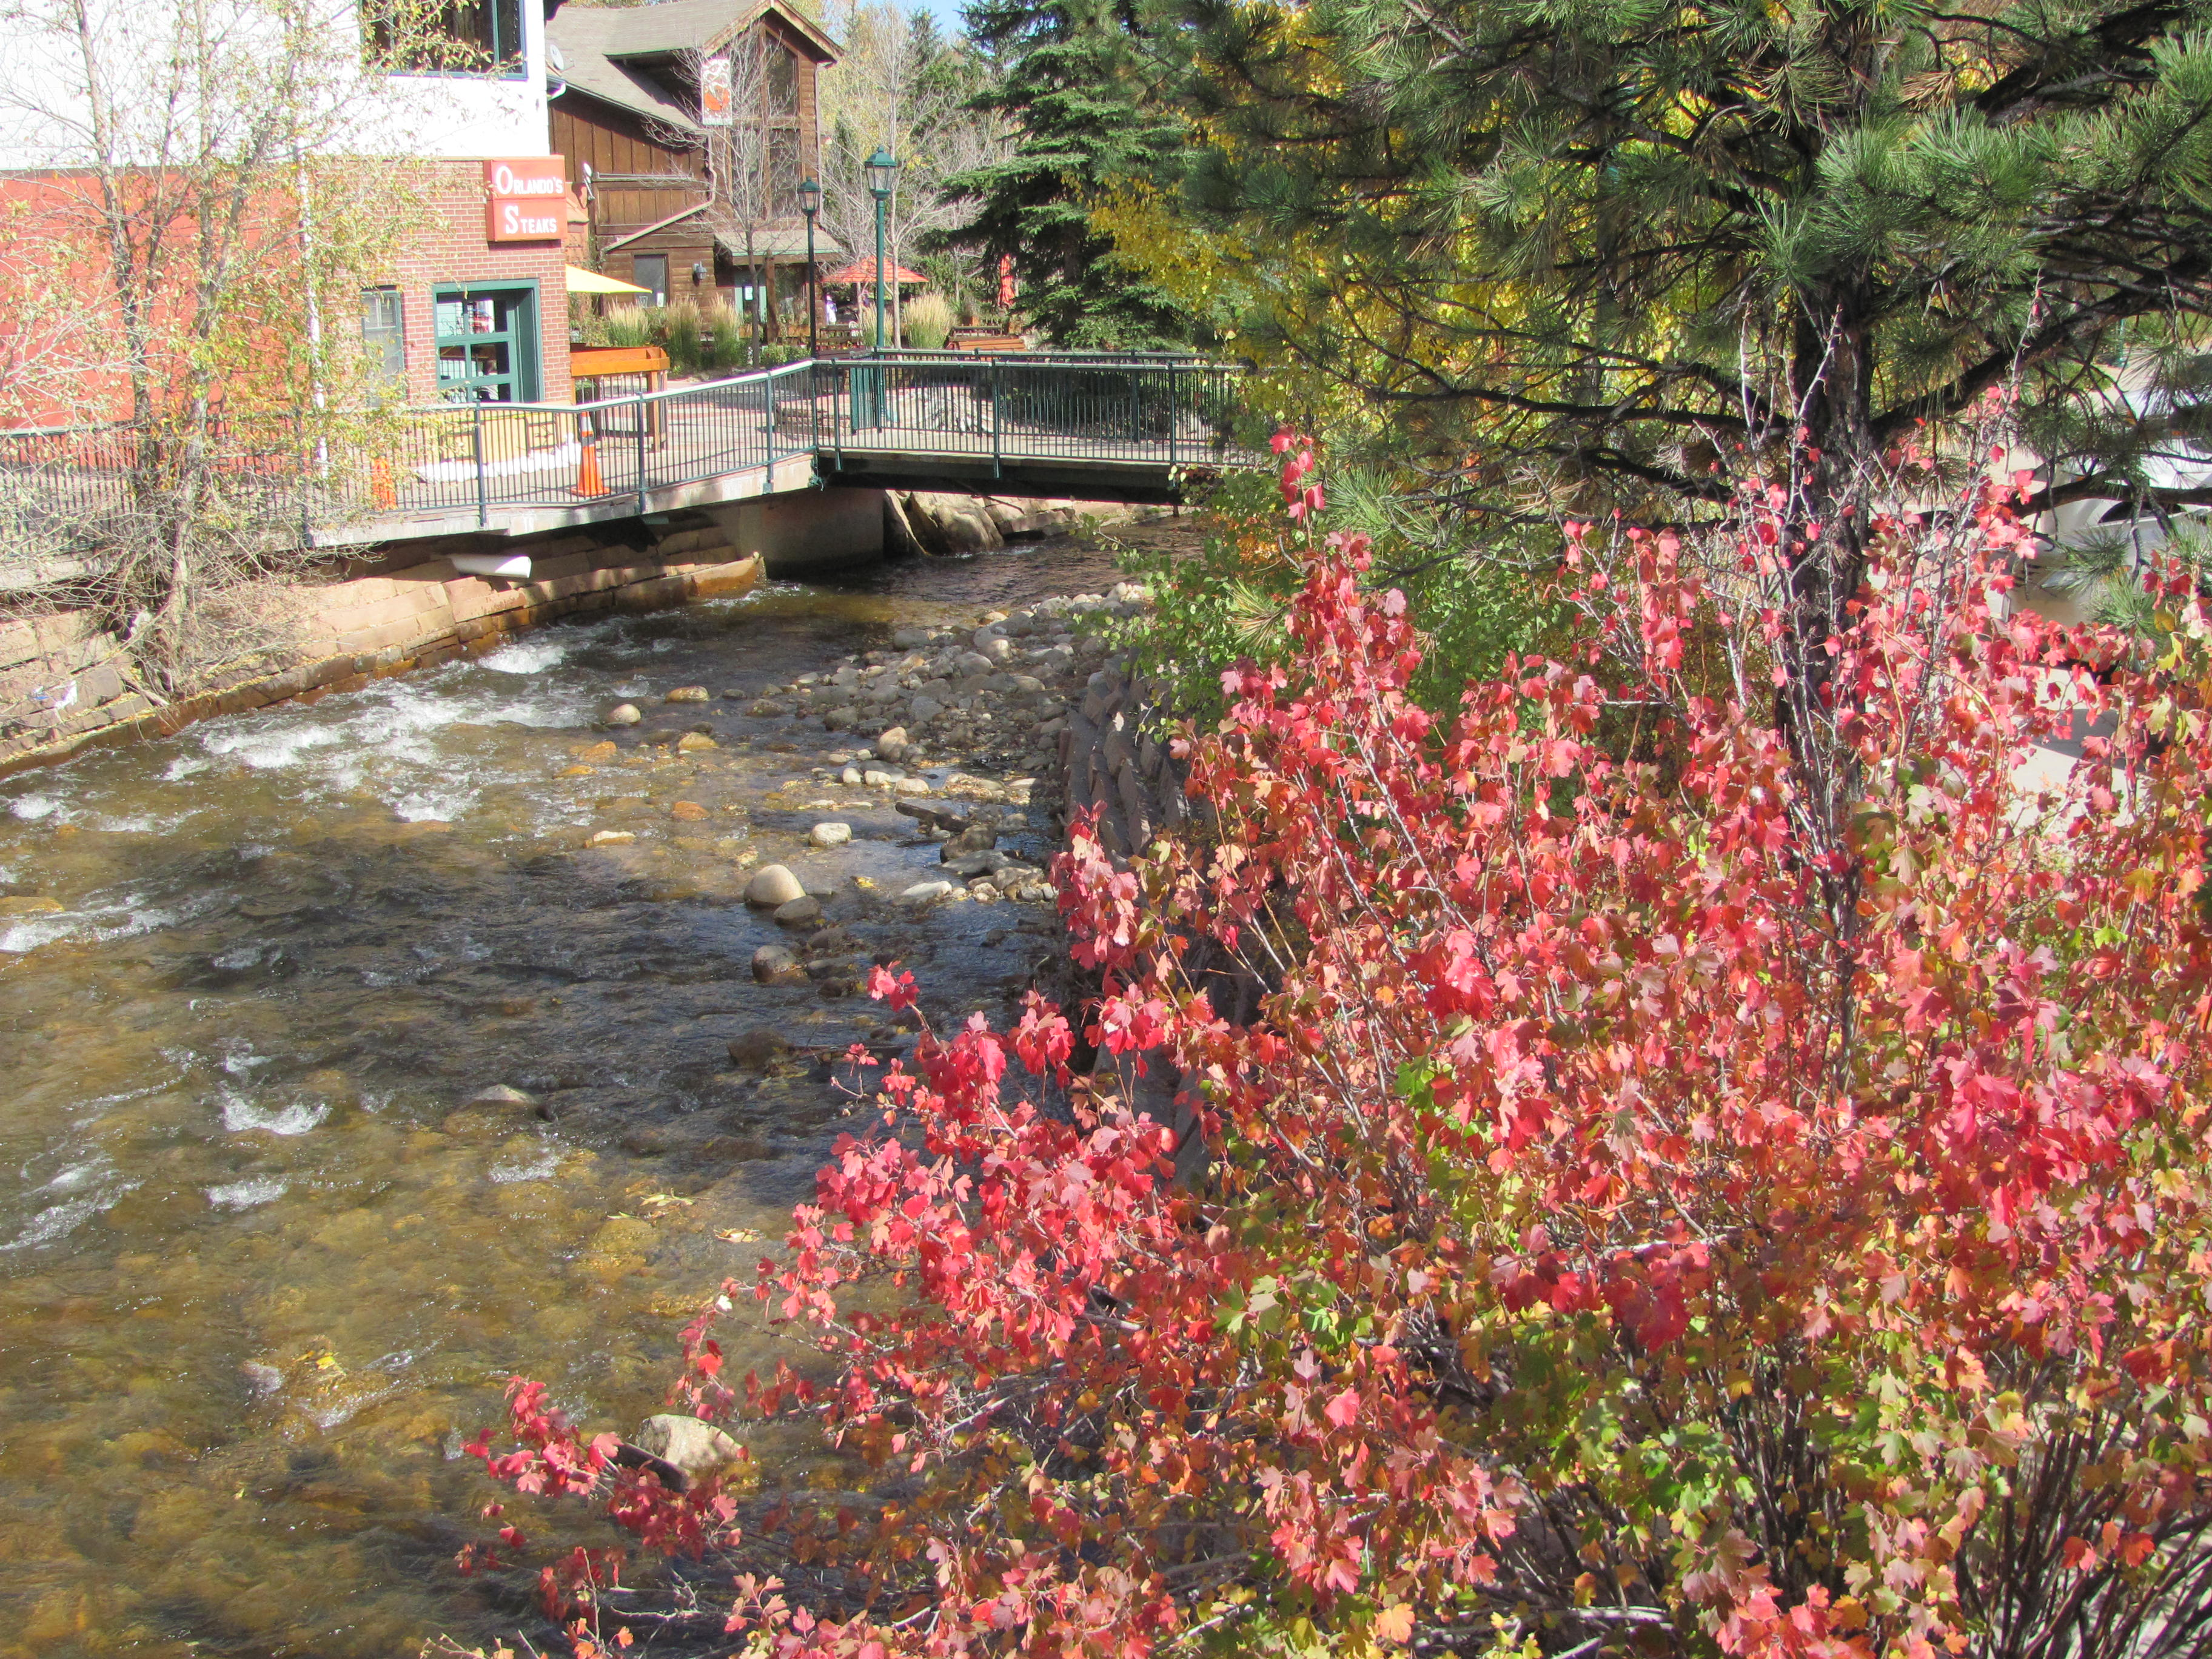 Fall Day in Estes Park